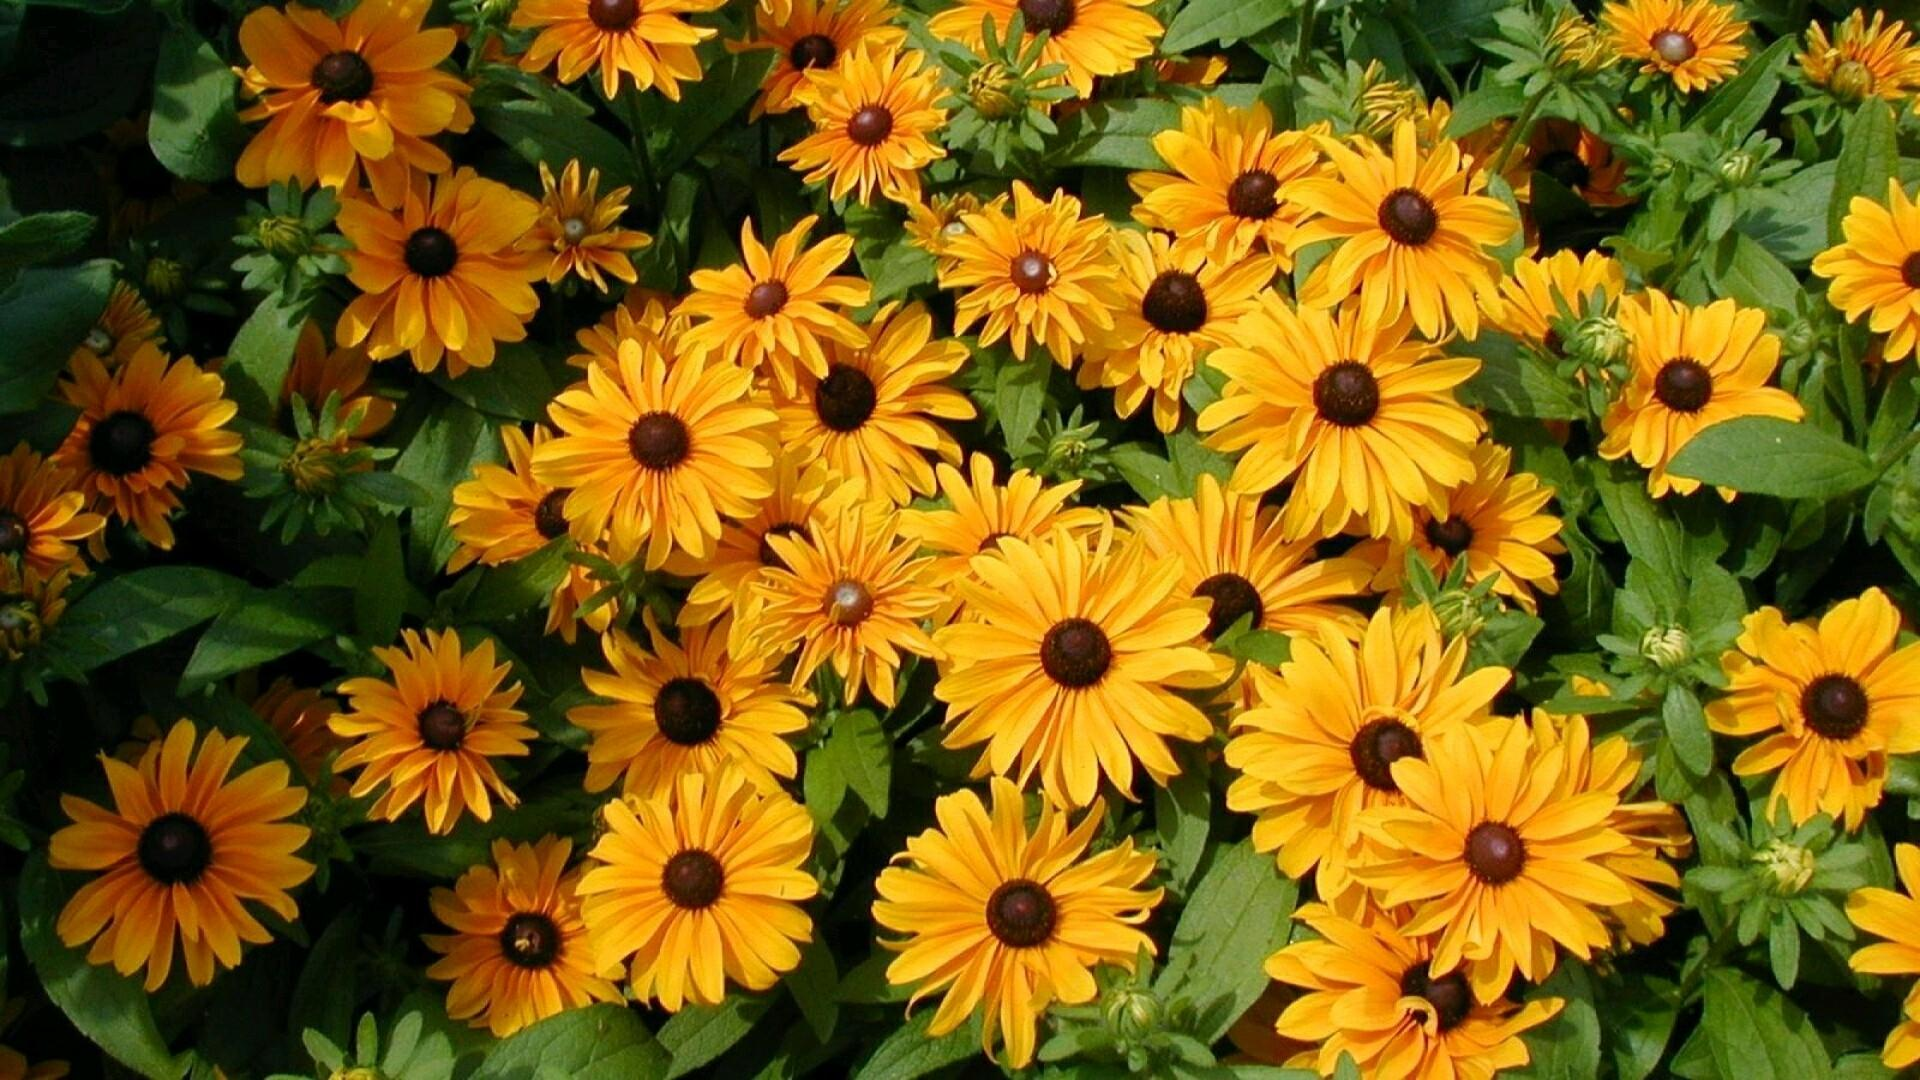 Black eyed susan wallpaper hd download Black eyed susans